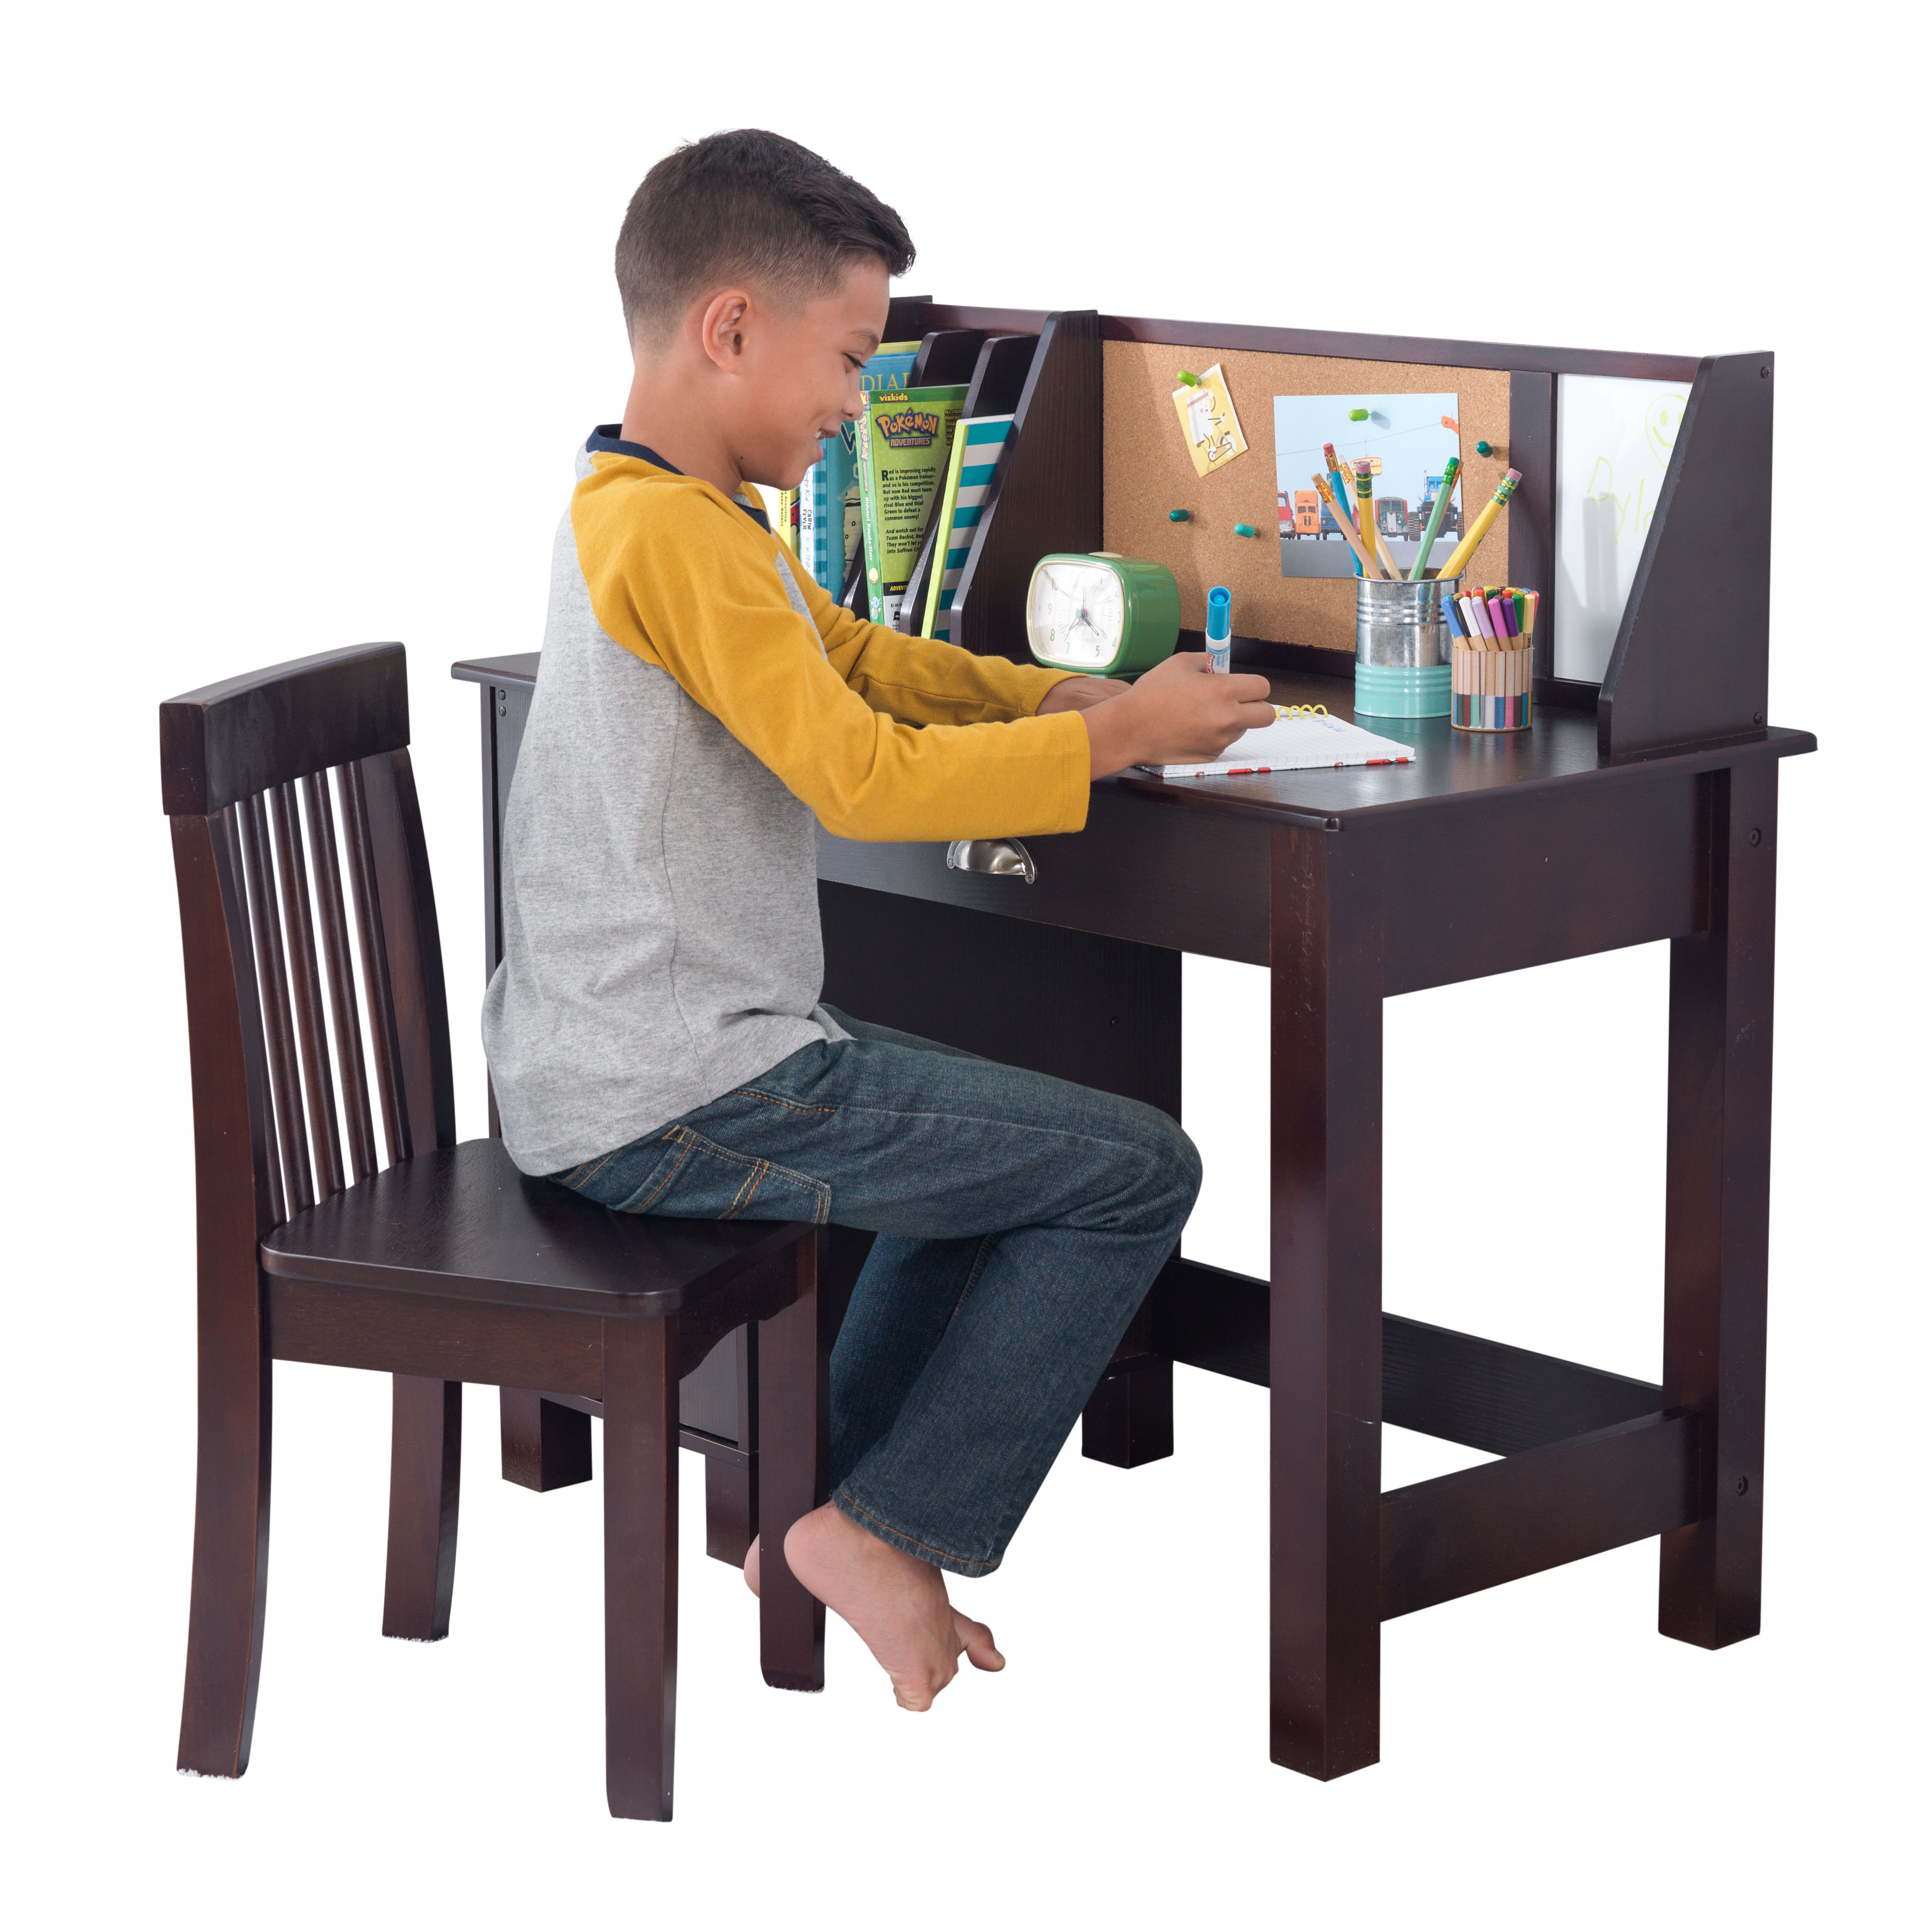 Kidkraft Kids Desk With Chair And Corkboard White Or